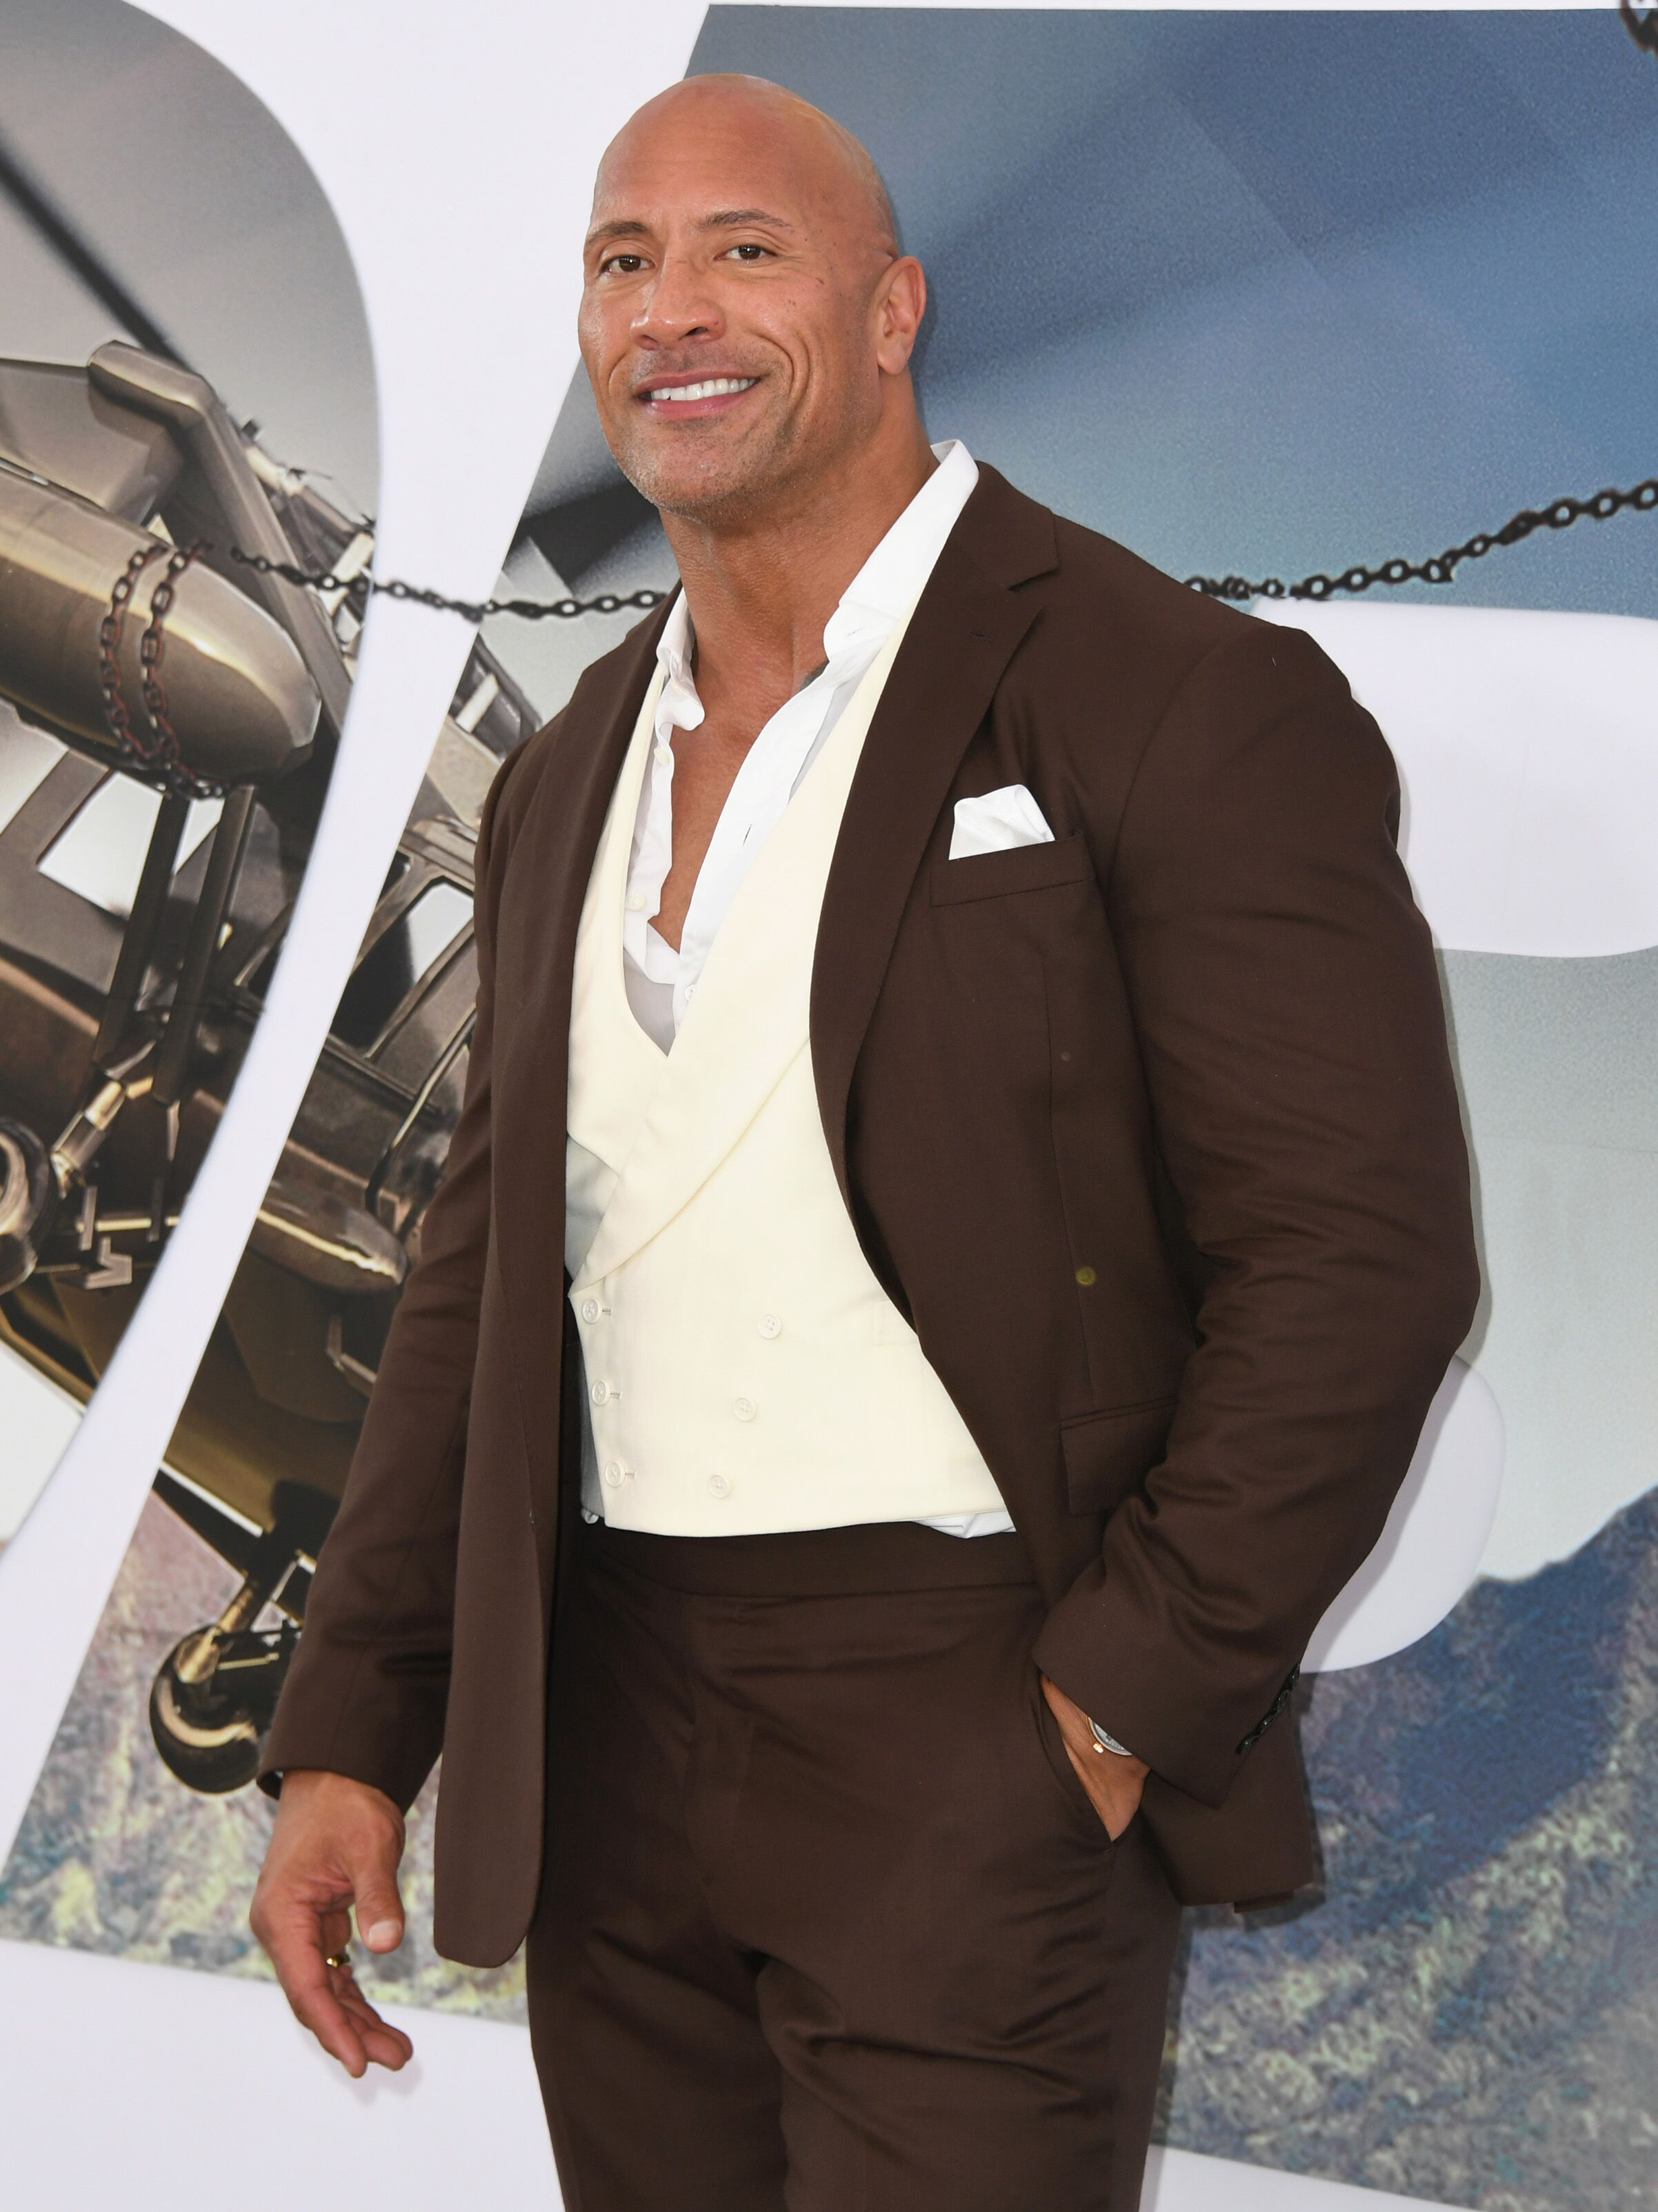 """Dwayne Johnson attends the Premiere Of Universal Pictures' """"Fast & Furious Presents: Hobbs & Shaw"""" at Dolby Theatre on July 13, 2019 